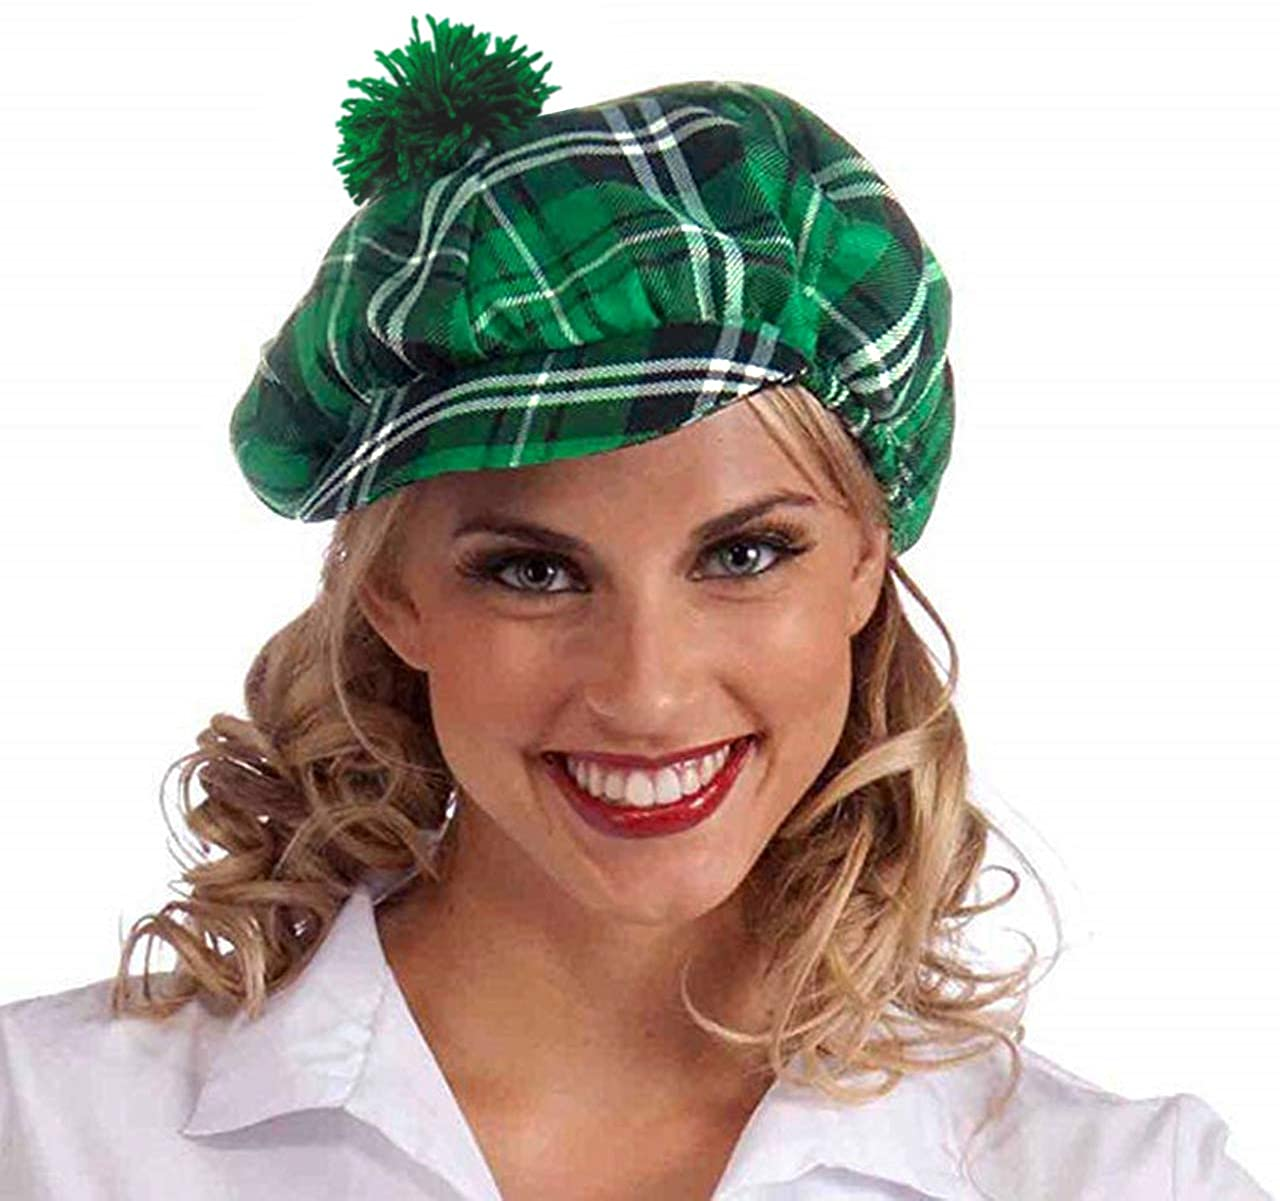 FALETO Unisex St. Patrick's Day Green Plaid Hat Irish Party Funny Accessory